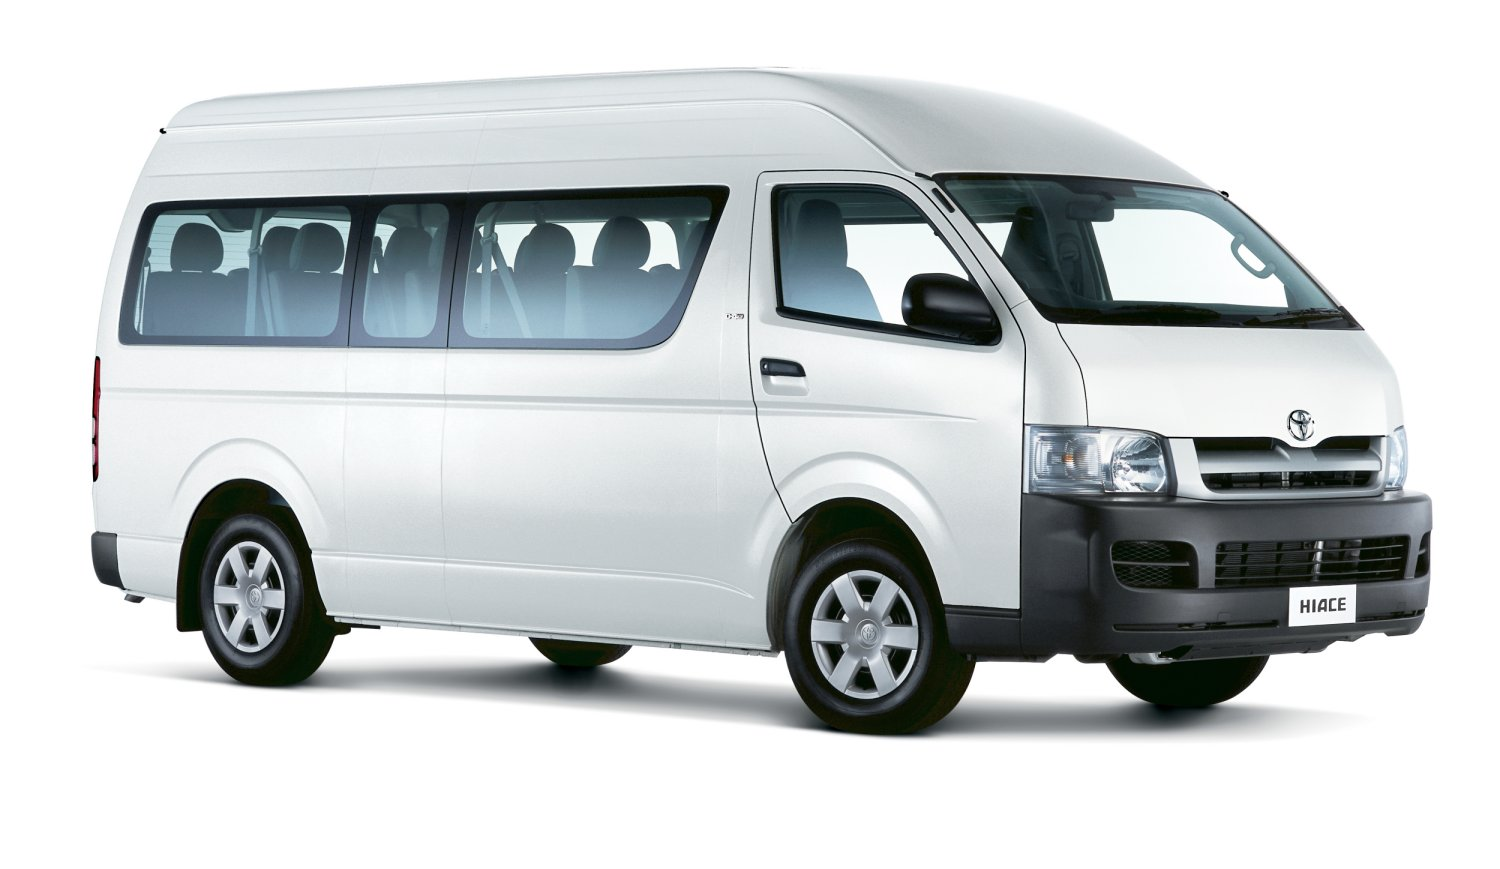 Car Hire India Rental Cars Van Hire Services Airport